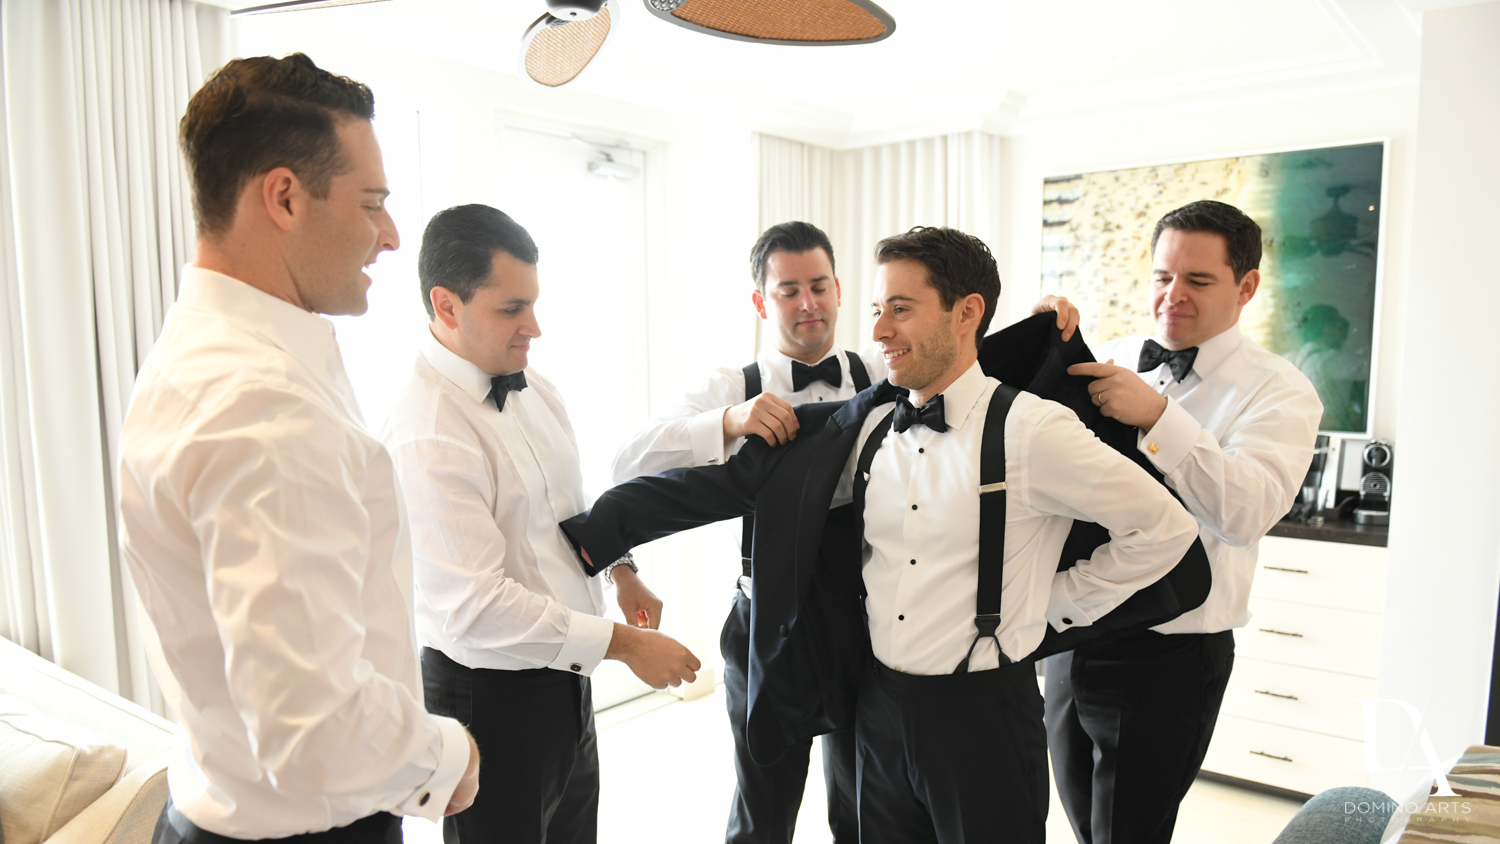 groom getting ready at Tropical Luxury Jewish Wedding in Miami Beach by Domino Arts Photography